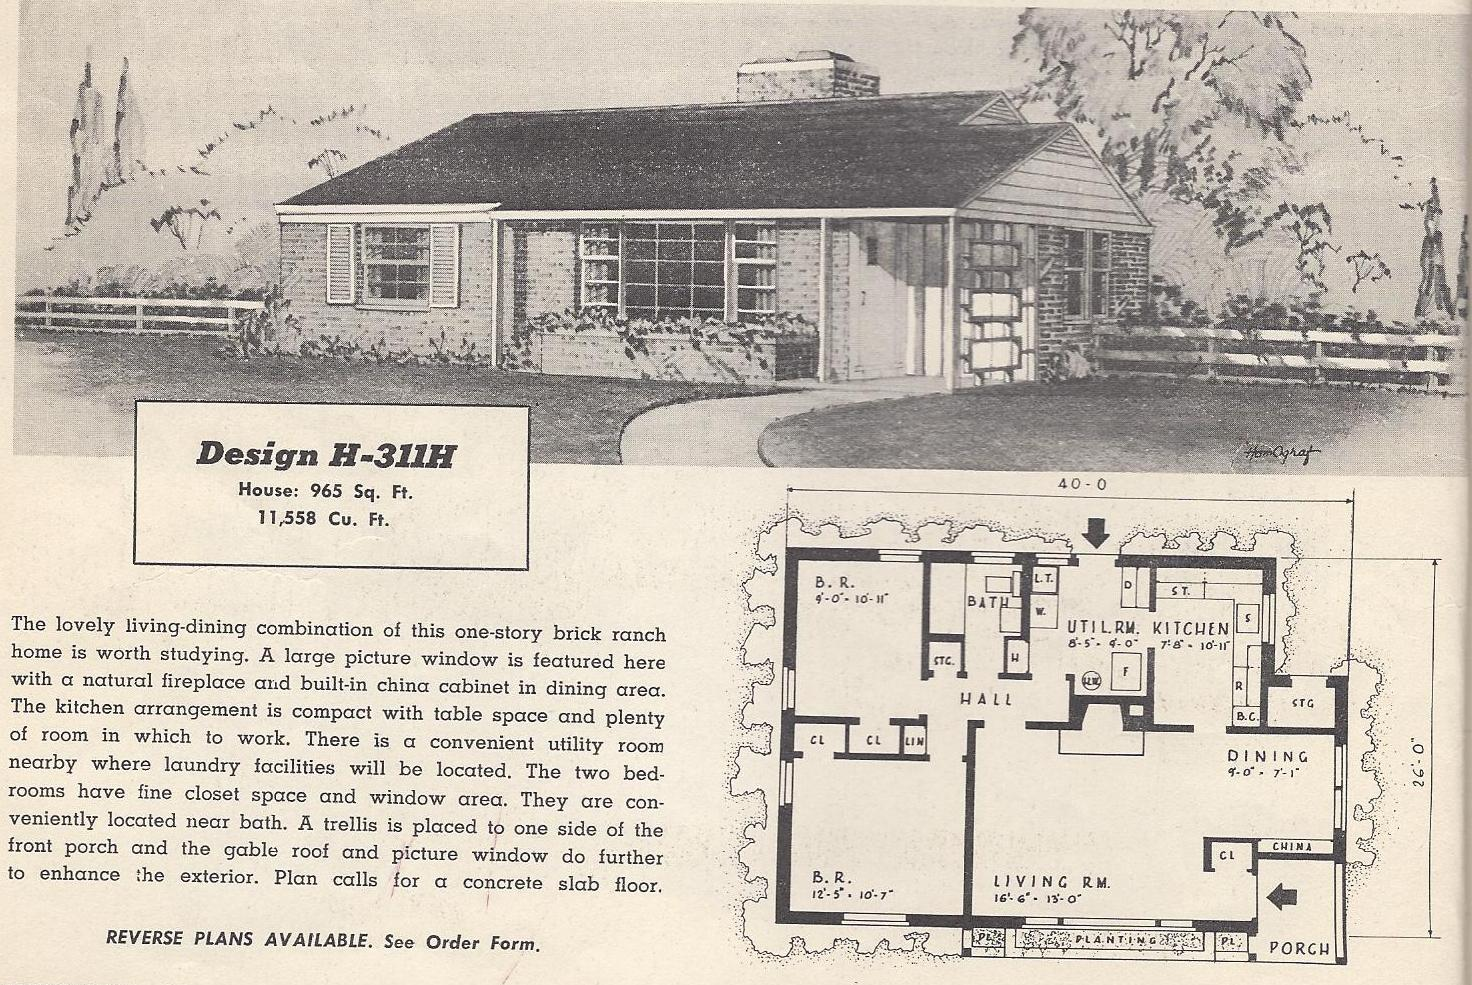 Vintage house plans 311h antique alter ego Old ranch house plans